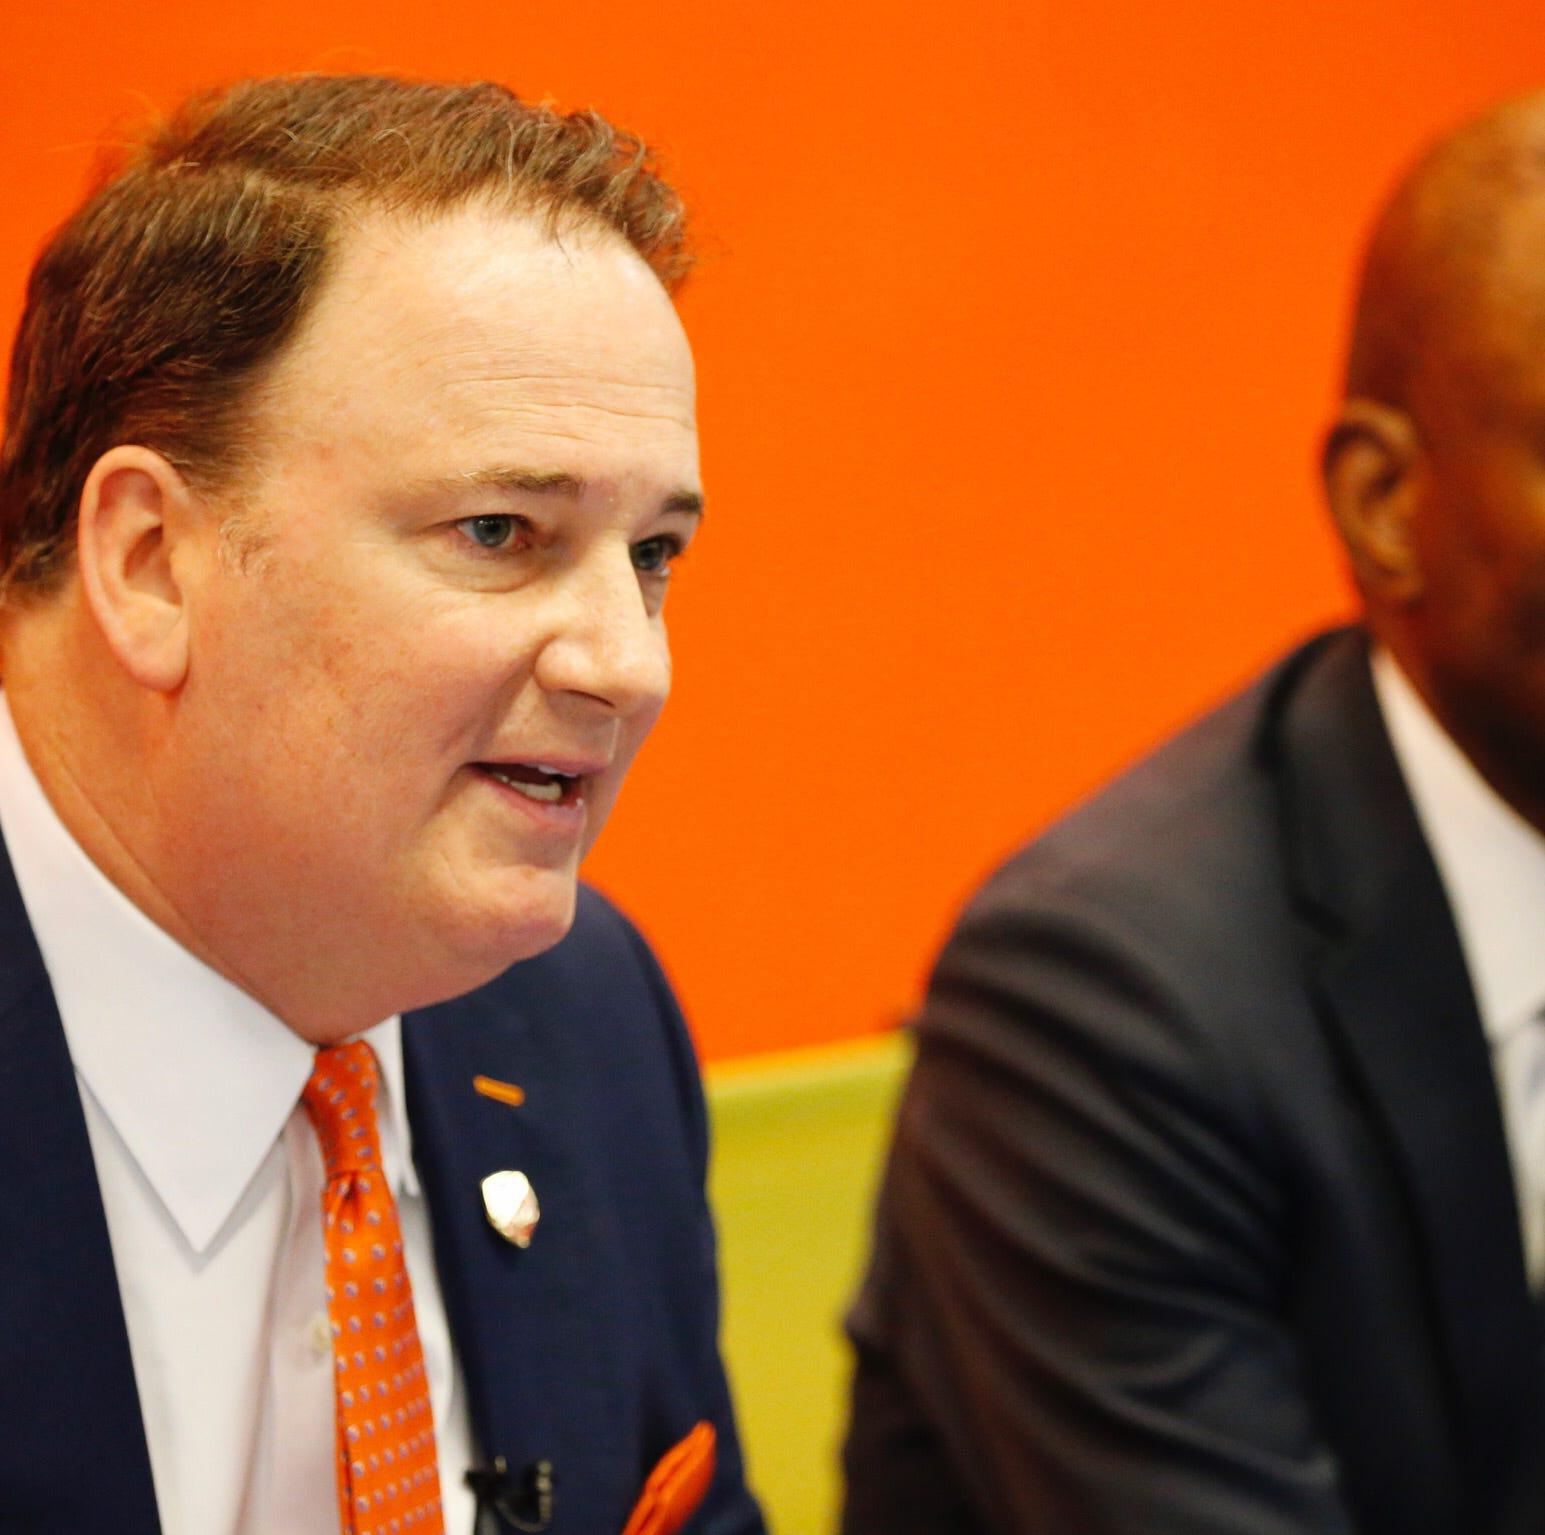 Jeff Berding set to speak on Cincinnati City Council's FC Cincinnati stadium ultimatum